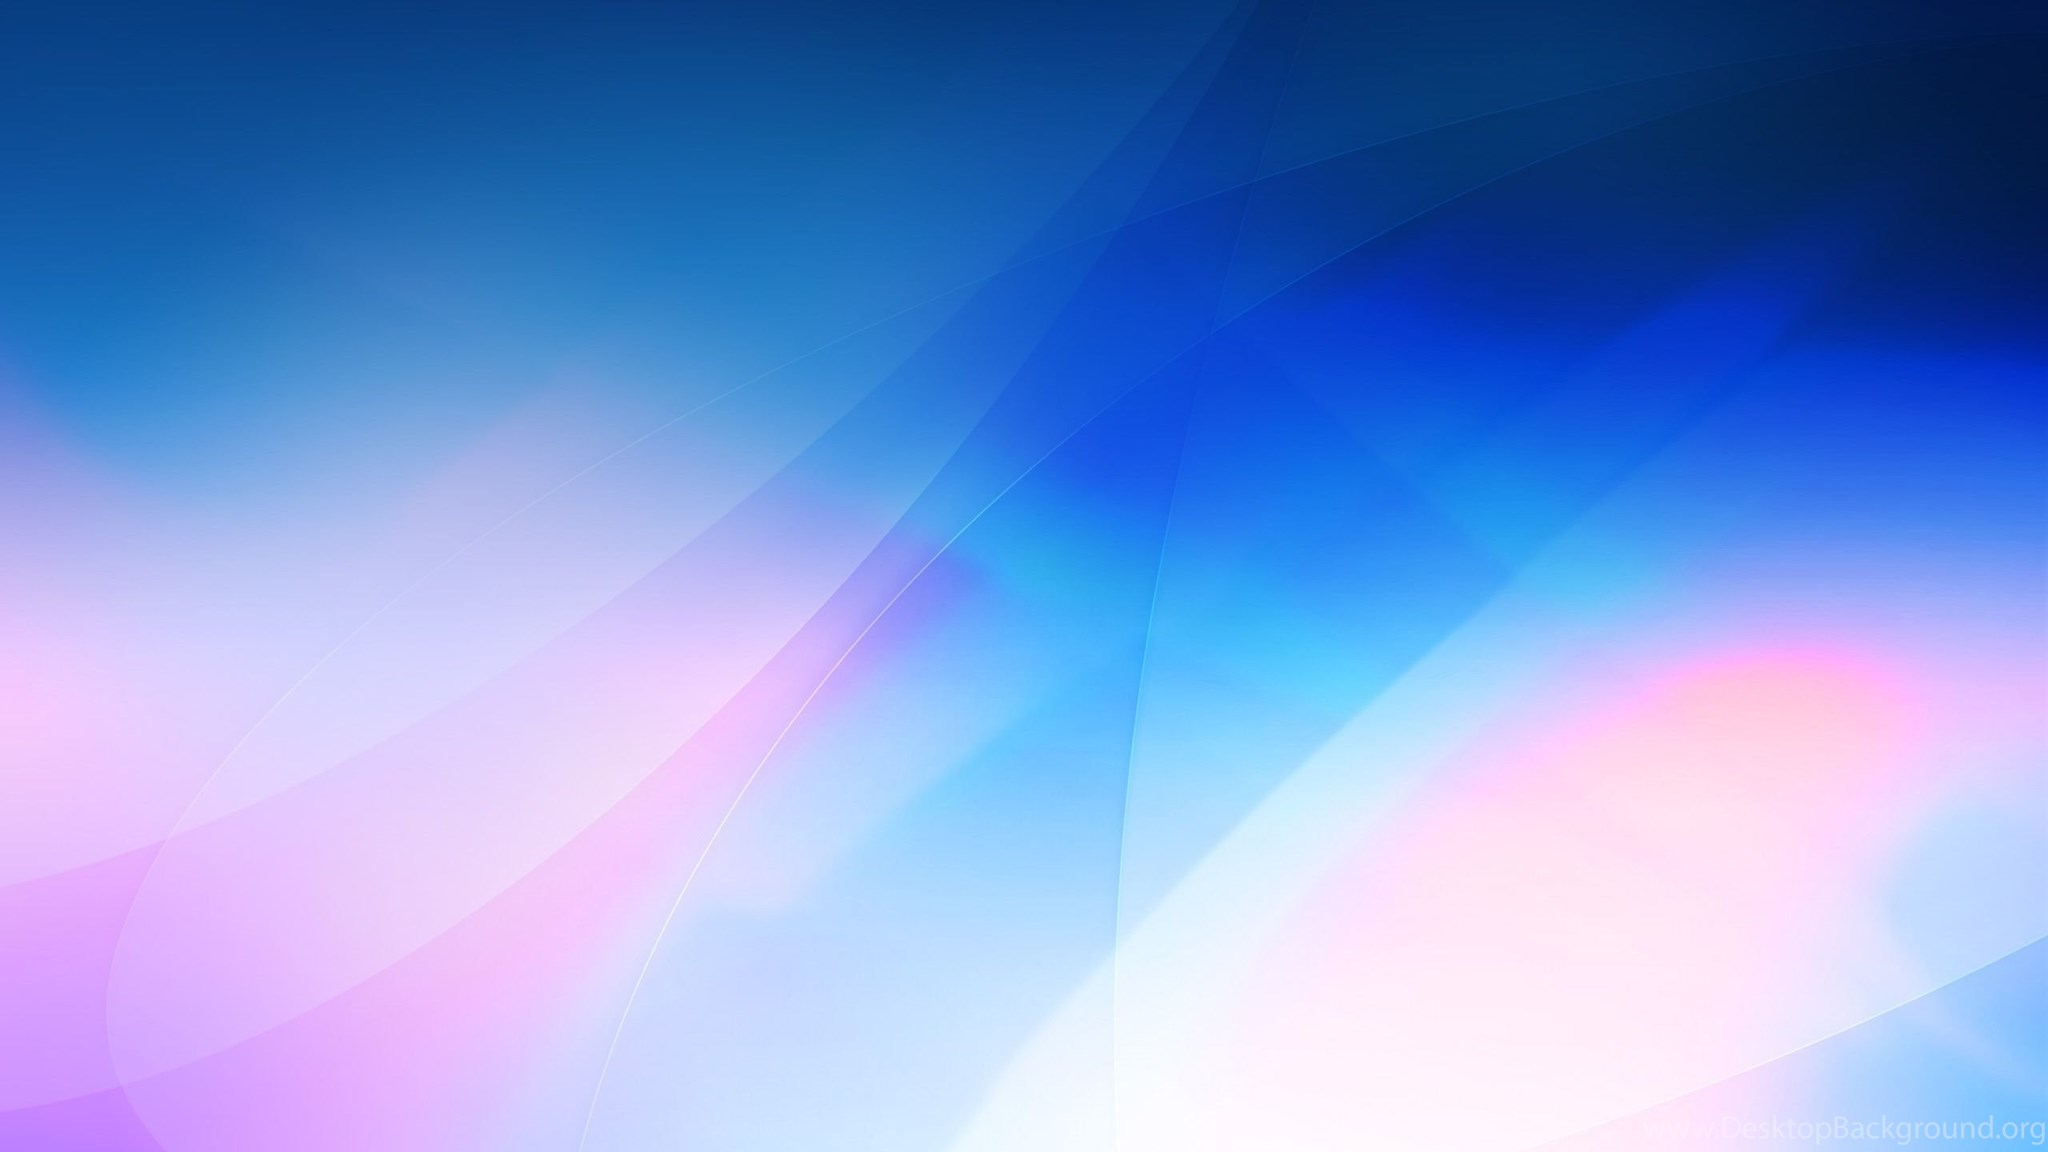 Pink And Blue Abstract Backgrounds Wallpapers 1053287 Desktop Background